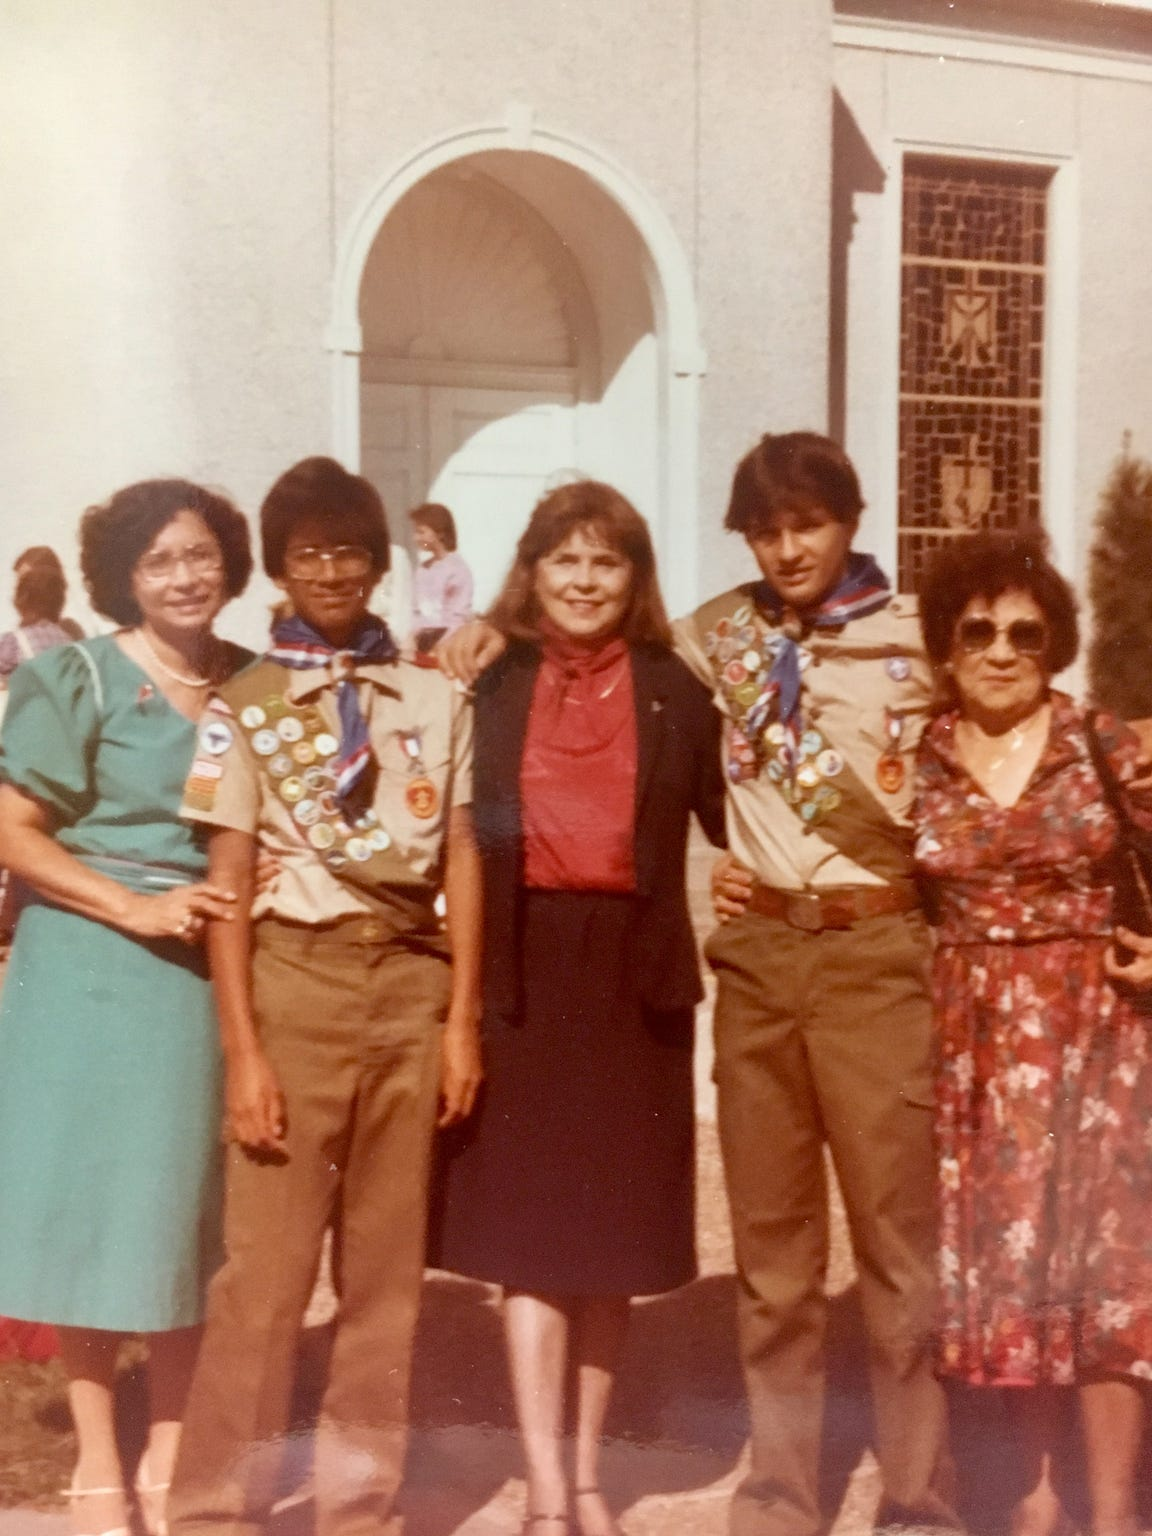 David Morales (second from left) is pictured in his Eagle Scout uniform after a Mass at St. John's Catholic Church in Robstown in August 1983. Pictured at left (in the blue dress) is David's mother, Maria Eudelia Morales, who passed away last year.